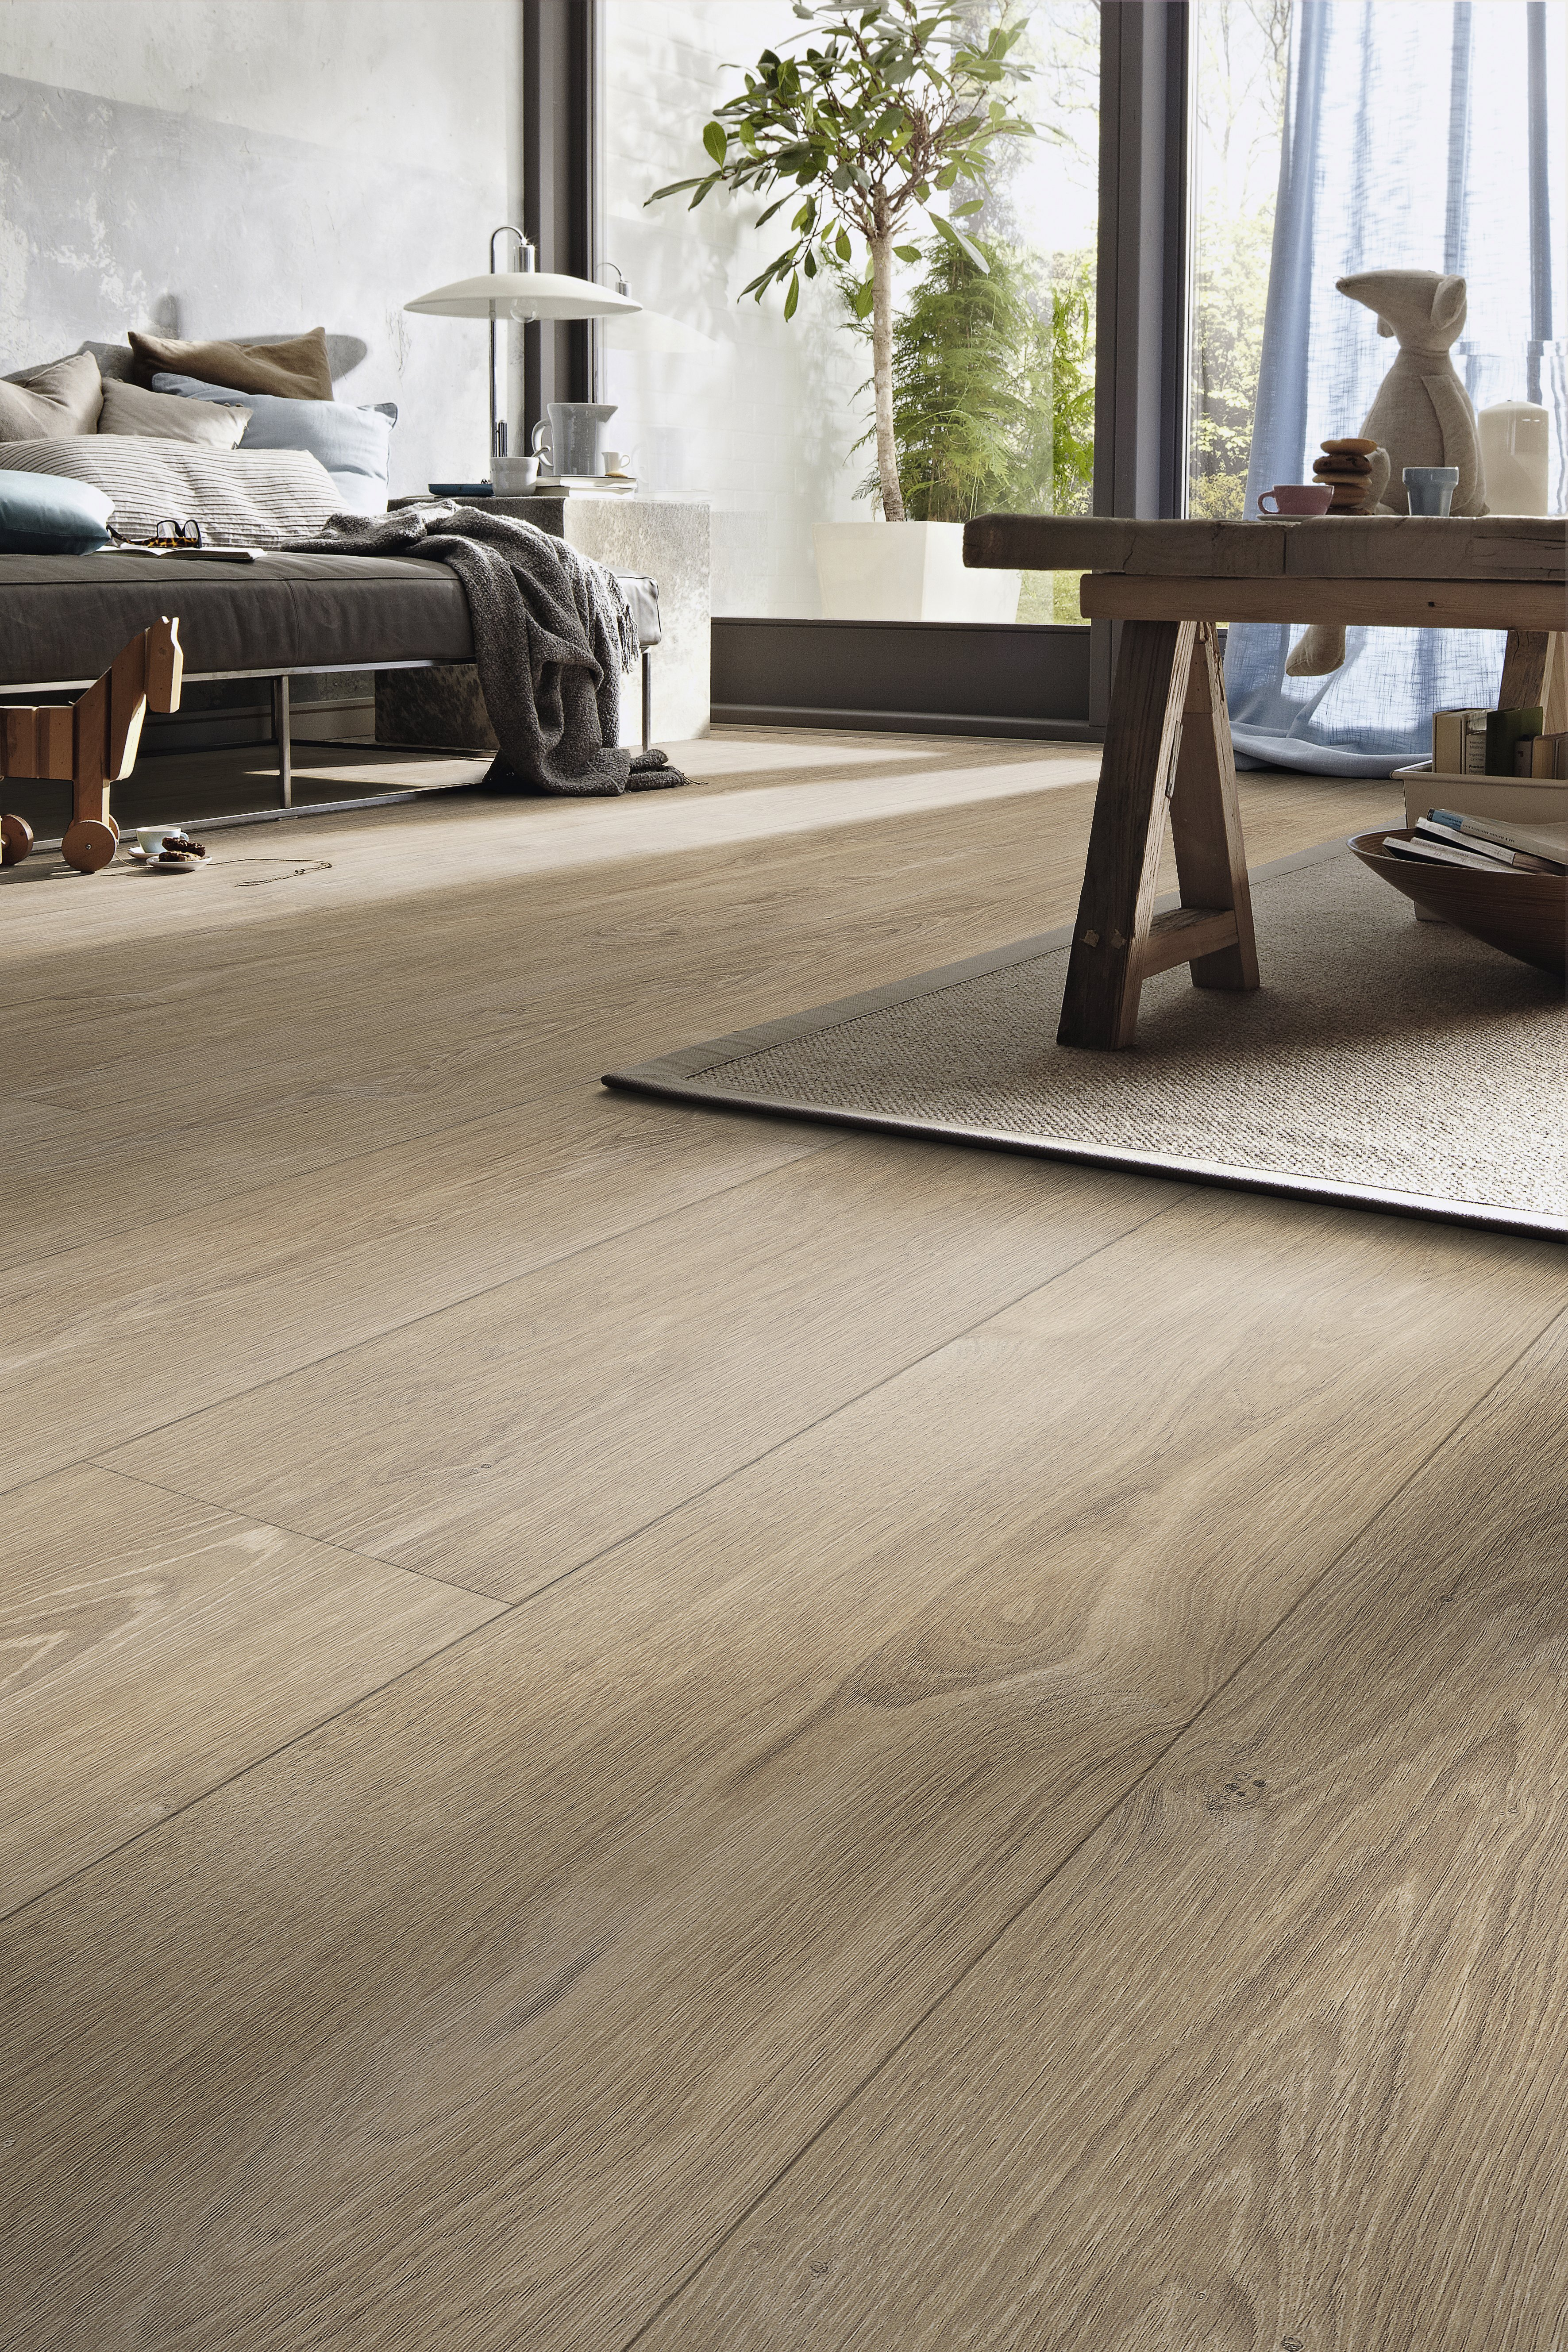 Toffee Oak L6275 | Special Pore Effect | Wood Effect